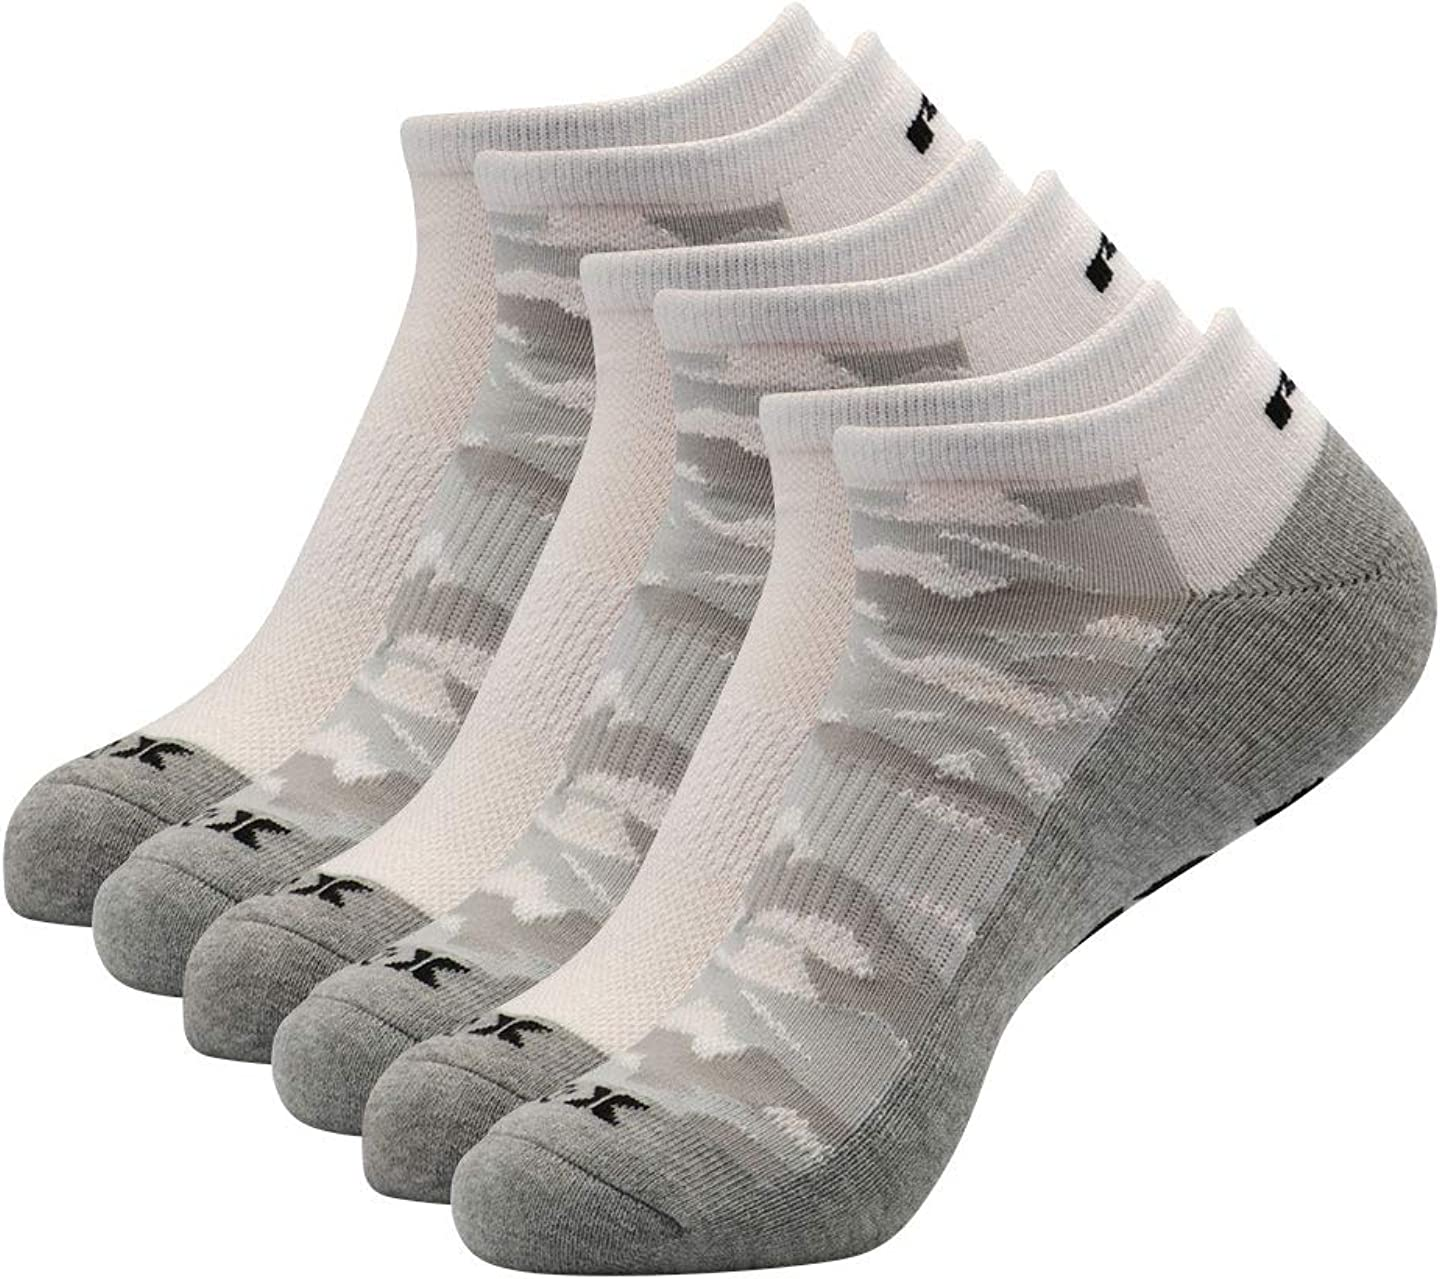 RBX Active Men's Basics Athletic Performance Cushioned X-Dri Quick Dry Ankle No Show Low Cut Socks 6-Pack